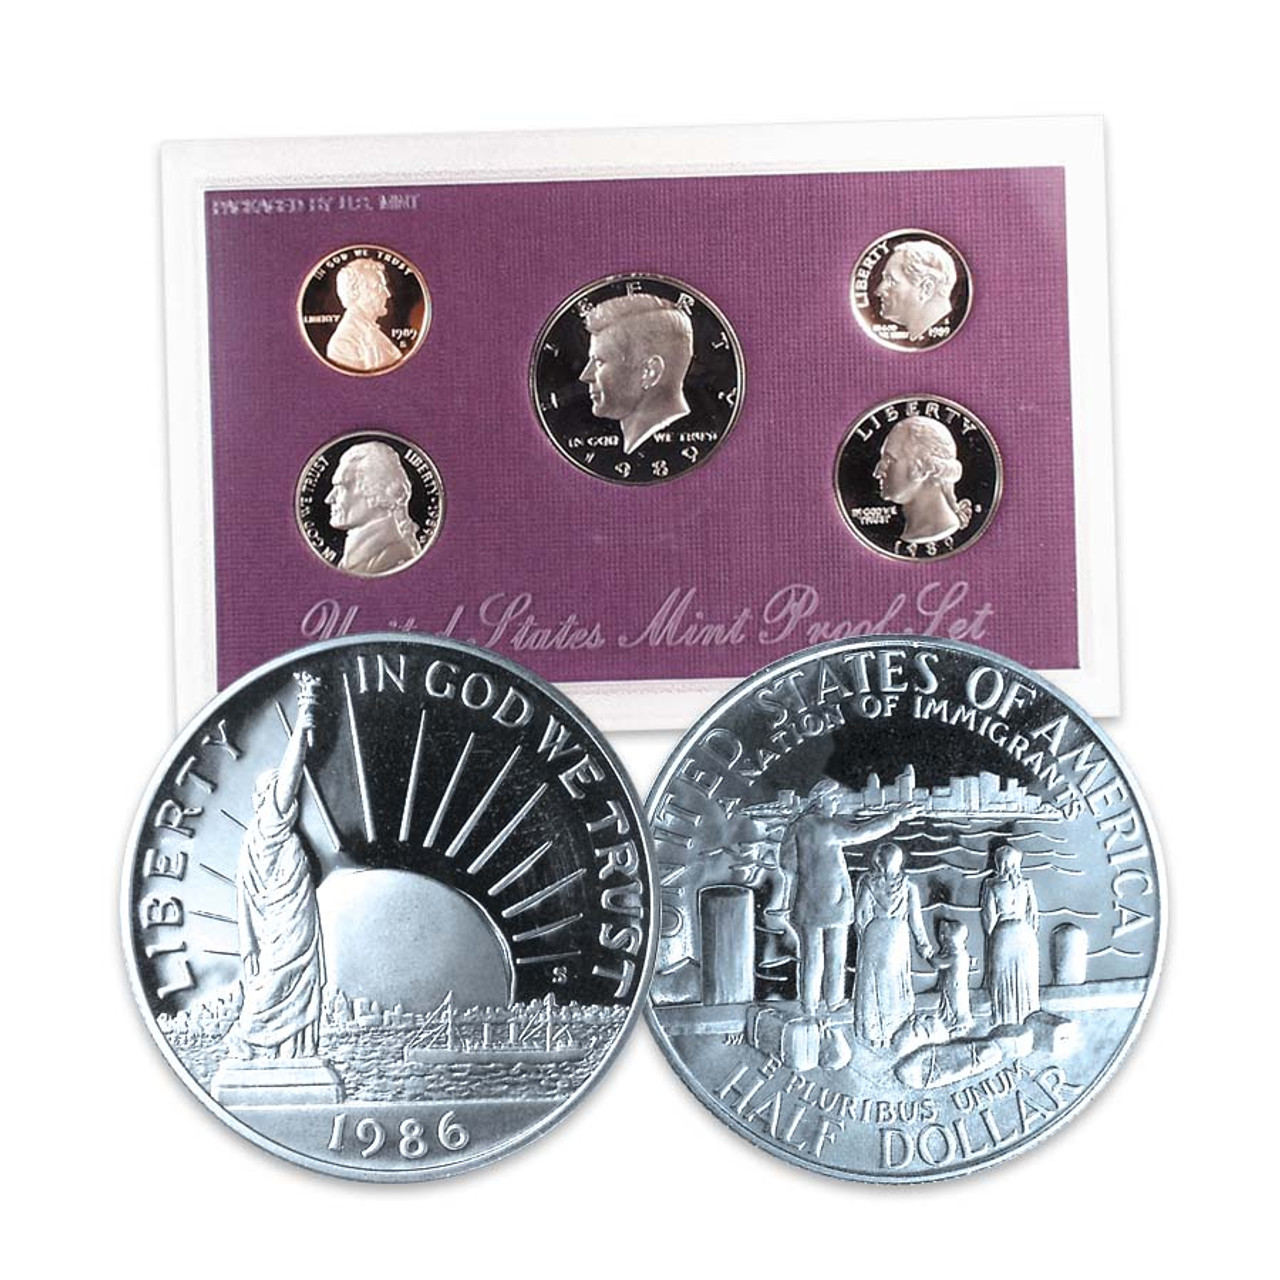 FREE Proof Set with a Statue of Liberty Half Dollar Proof Image 1